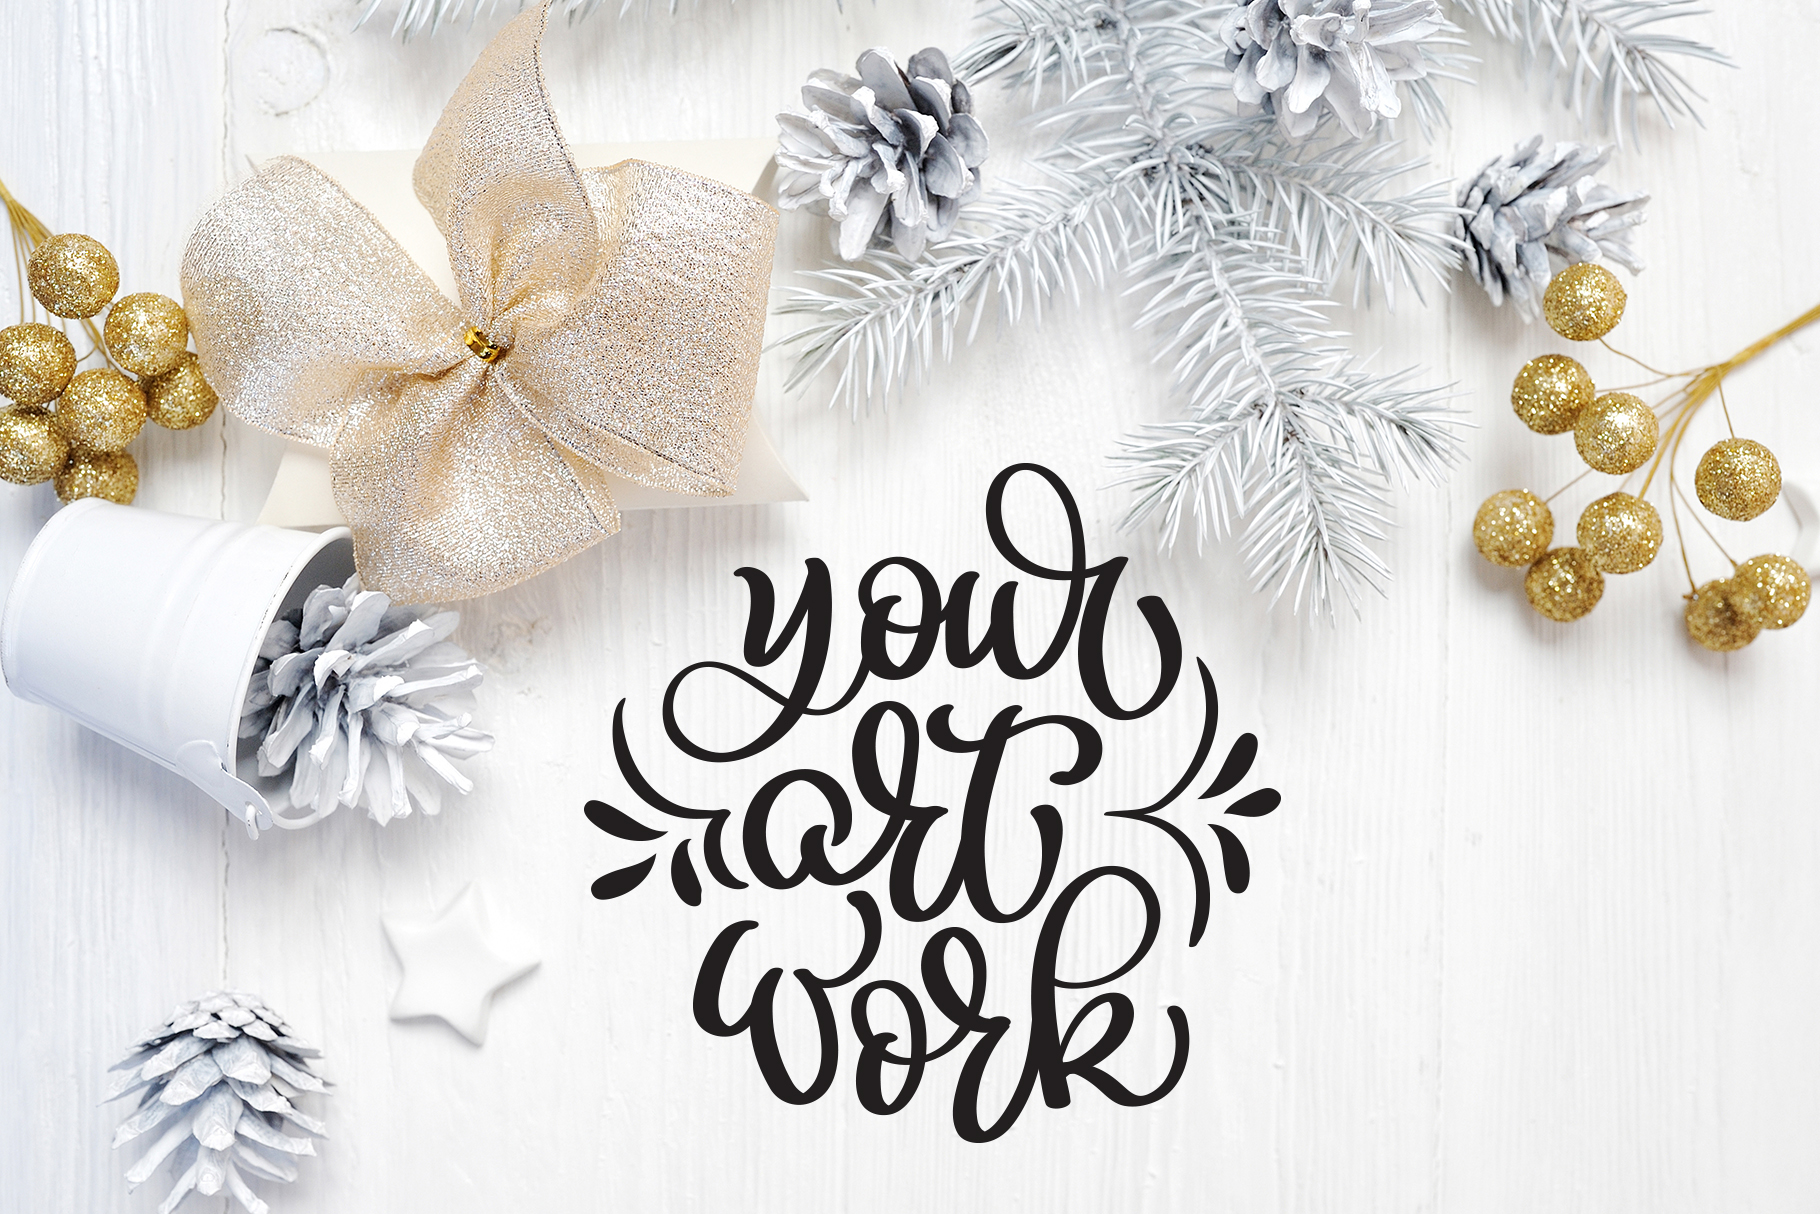 Christmas Photos Set Graphic Holidays By Happy Letters - Image 6